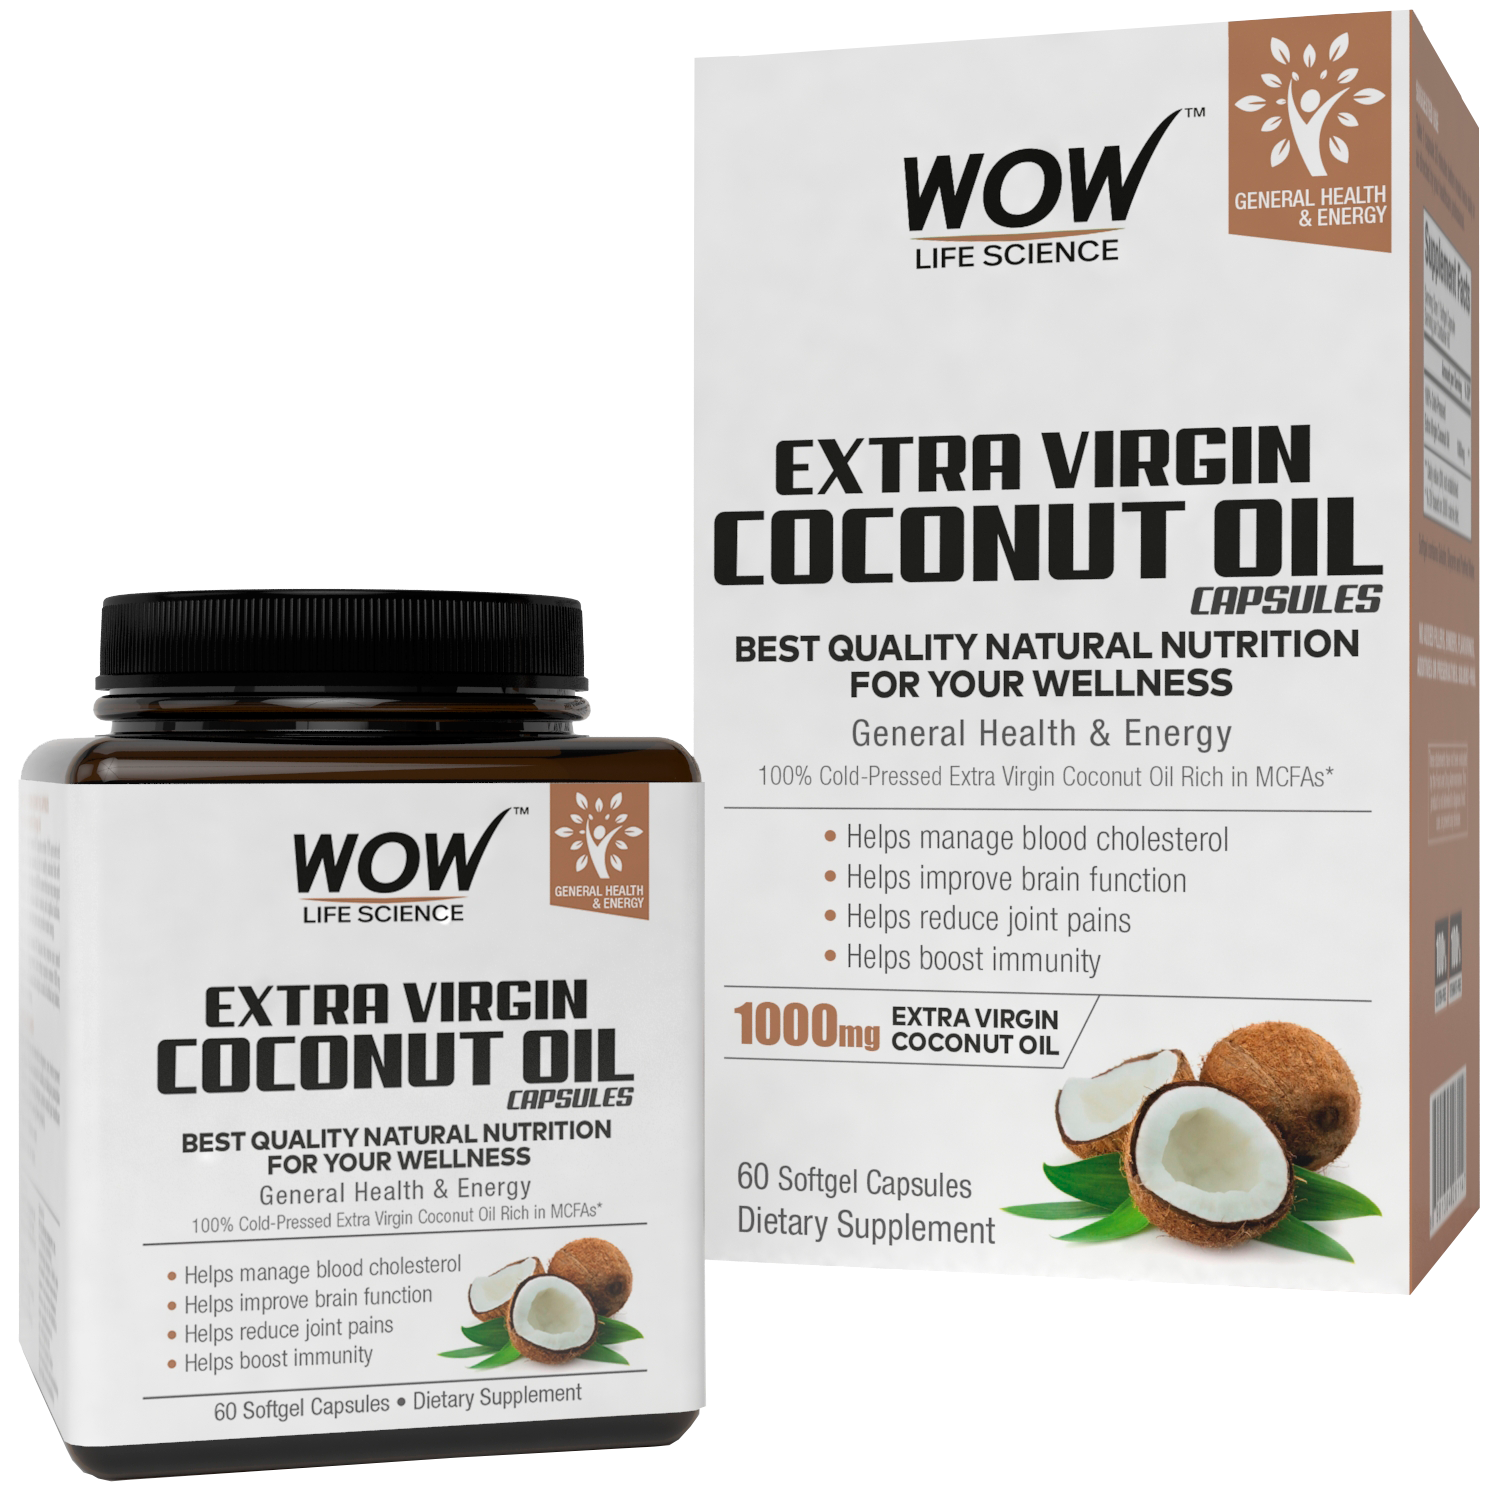 WOW Life Science Extra Virgin Coconut Oil Capsules